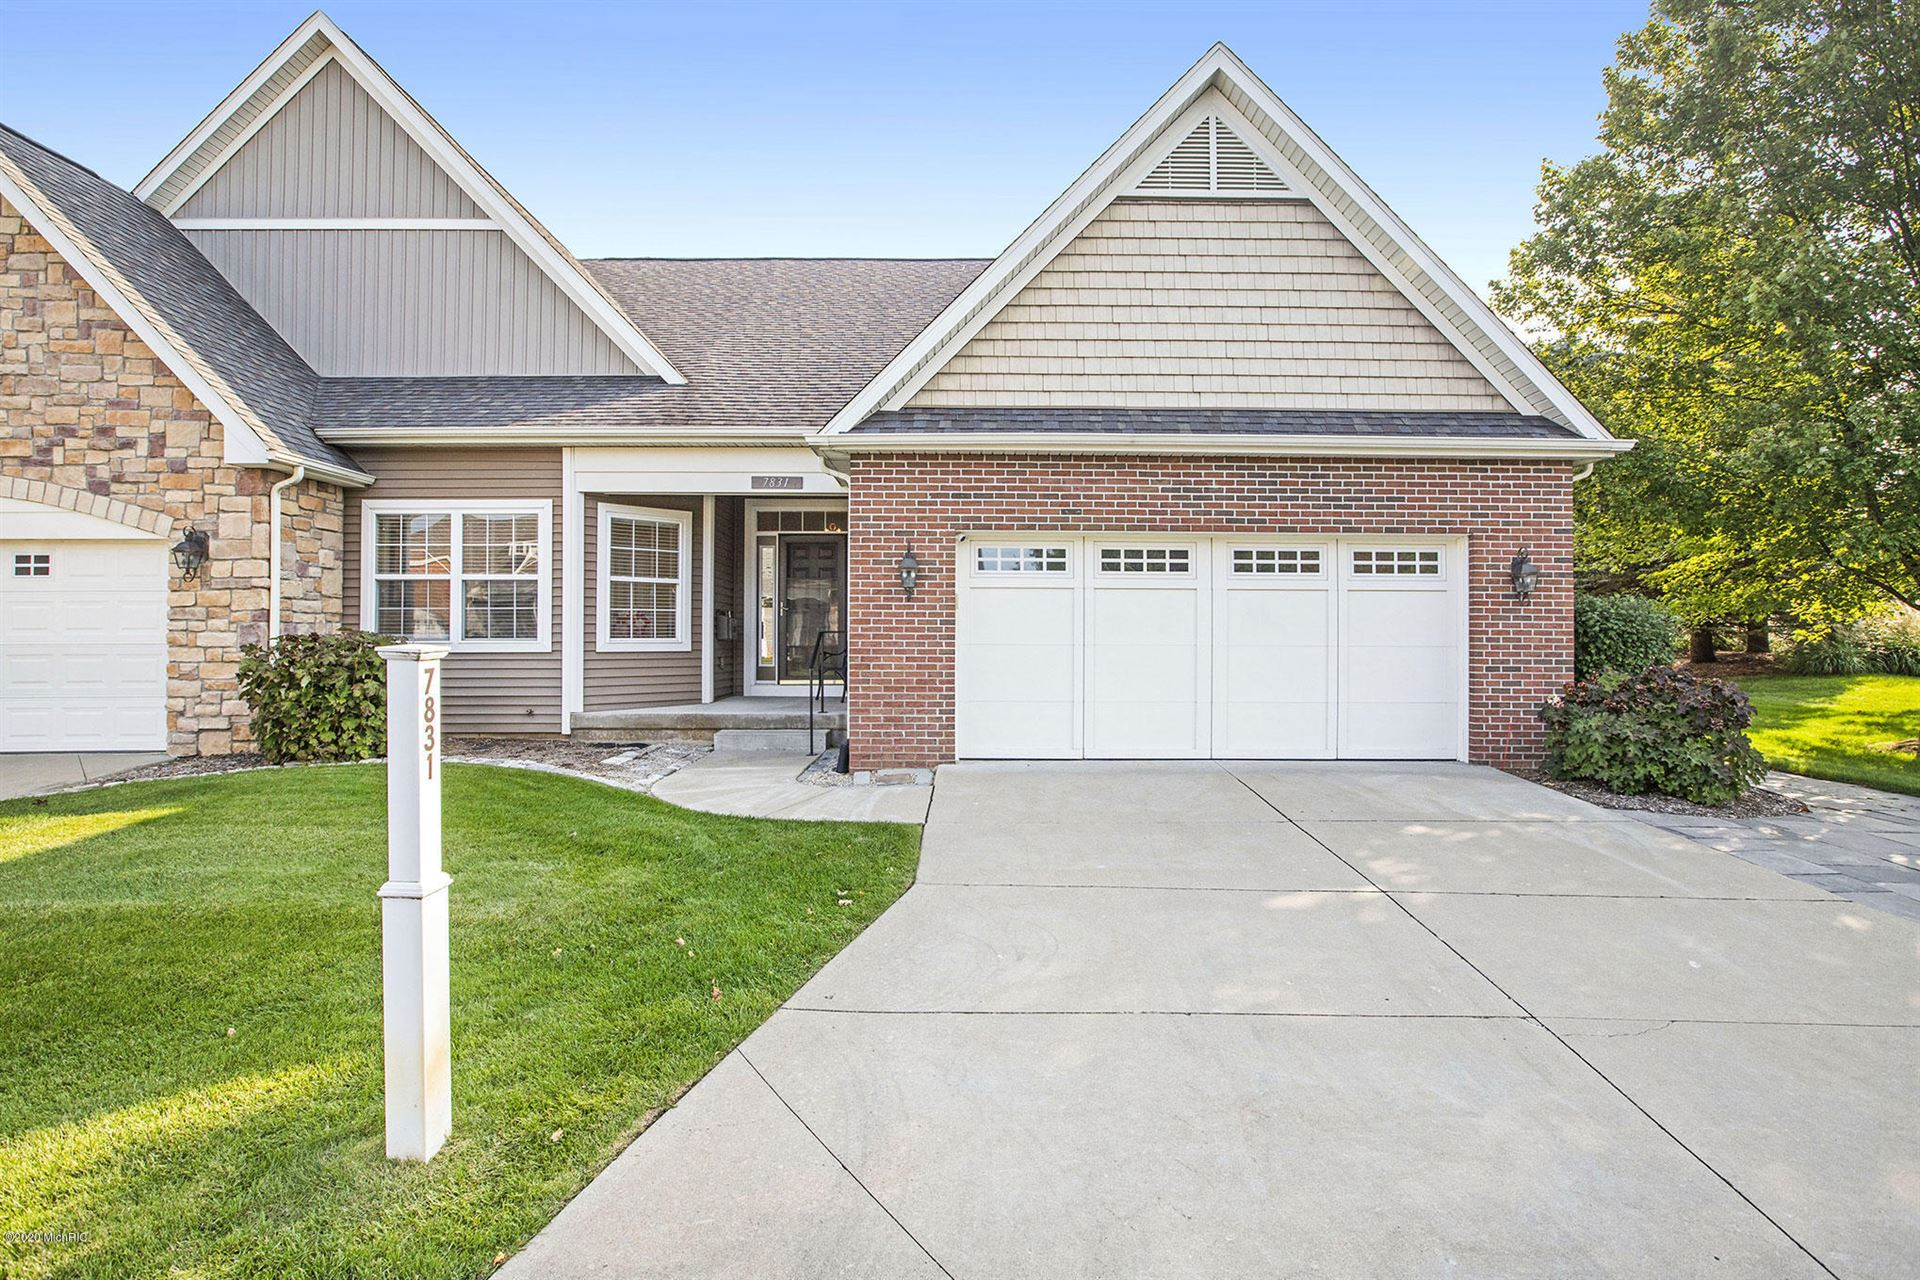 7831 Derby Court, Kalamazoo, MI 49009 - MLS#: 20042134